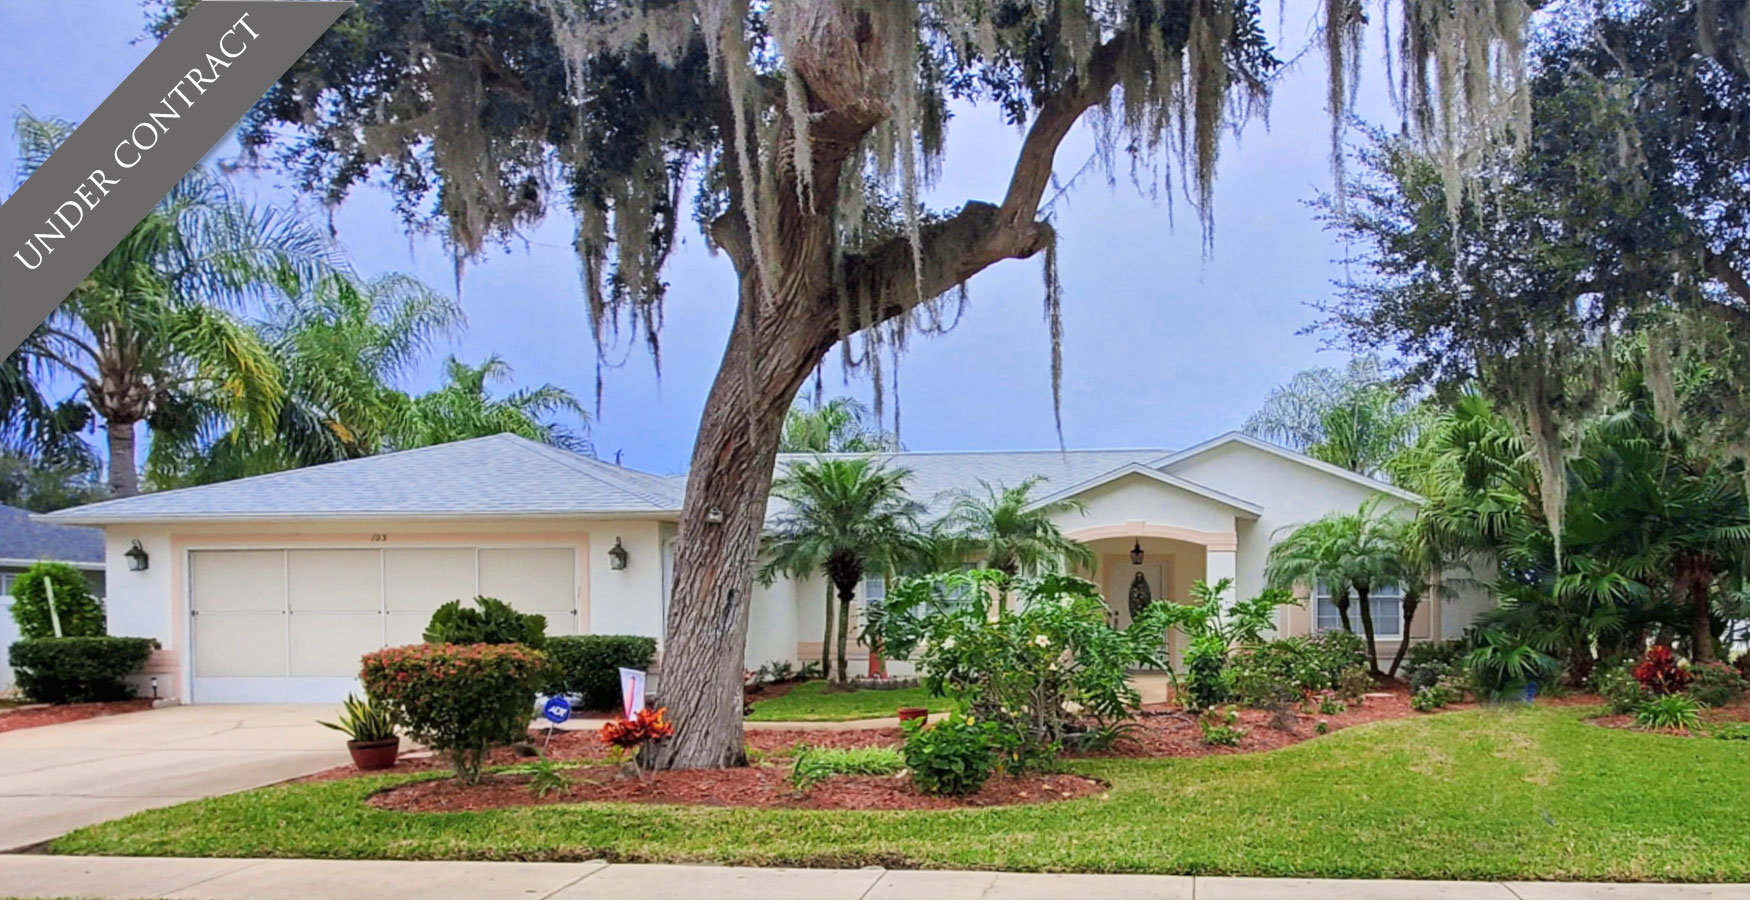 South Daytona Real Estate For Sale. 103 Spinnaker Circle